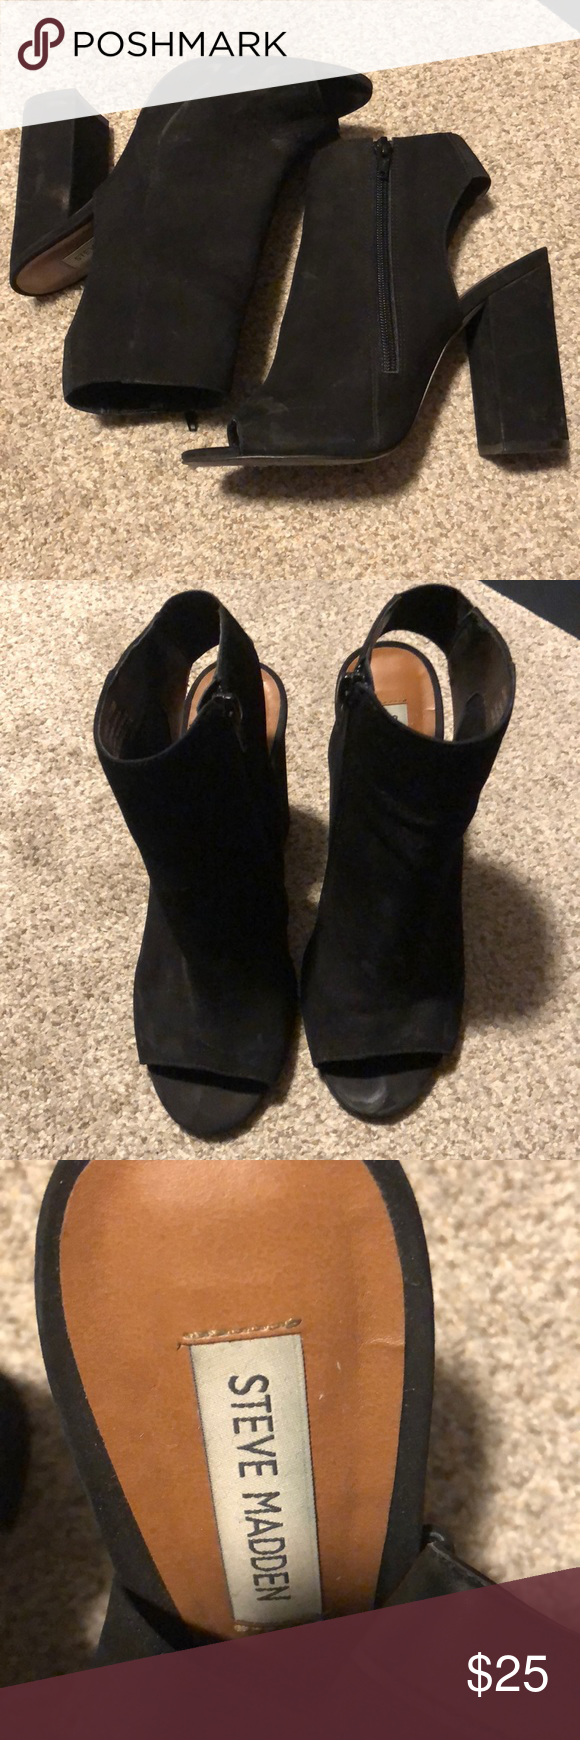 47ce795f62b Steve Madden Camile Peep-toe Heels Good condition Steve Maddens. Black  suede. Has some minor scuffing that s totally unnoticeable once  on-discoloration is ...